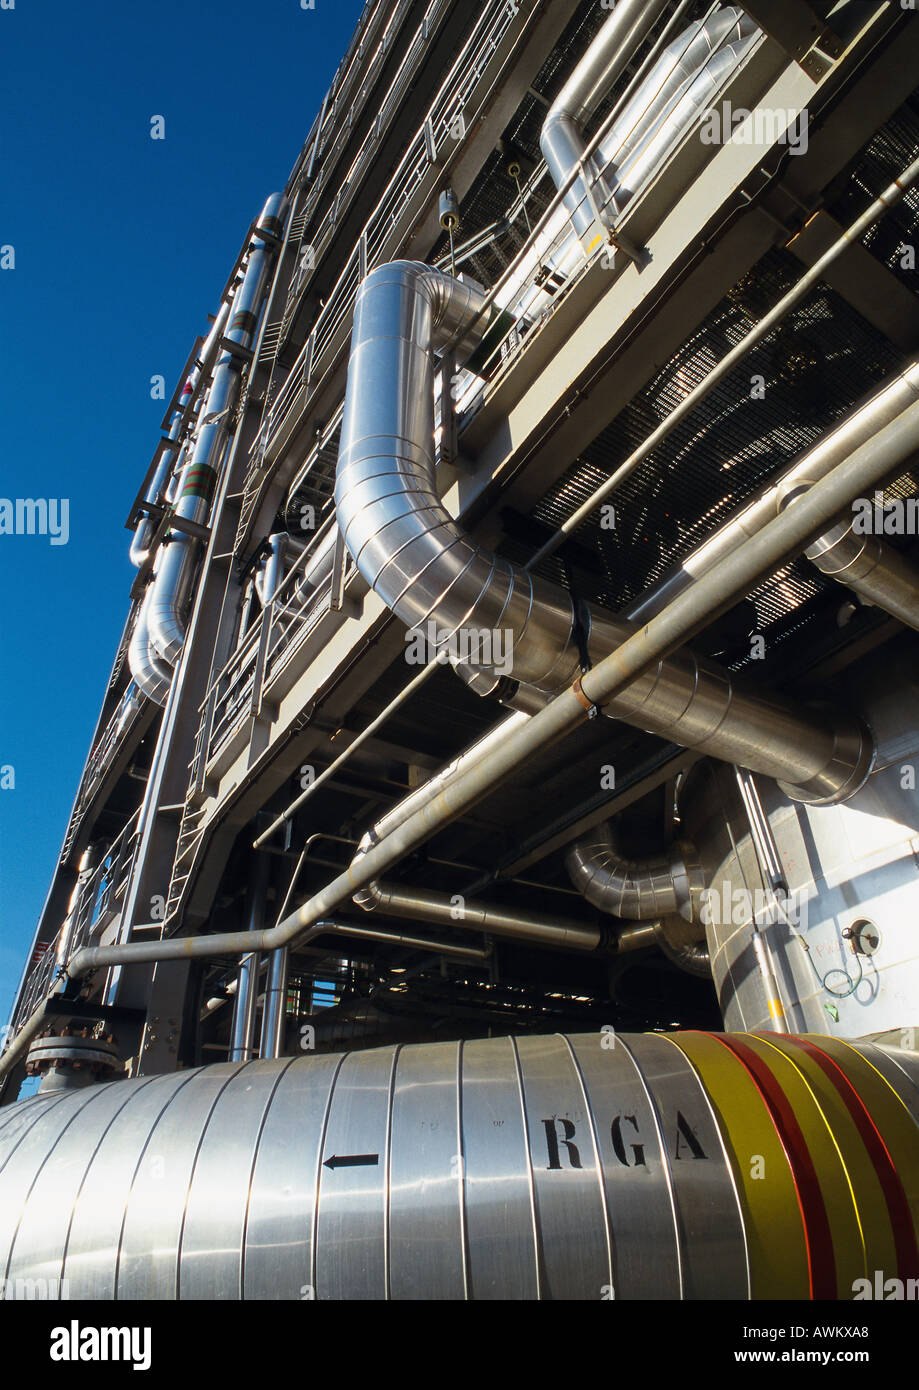 Thermal power plant, low angle view - Stock Image